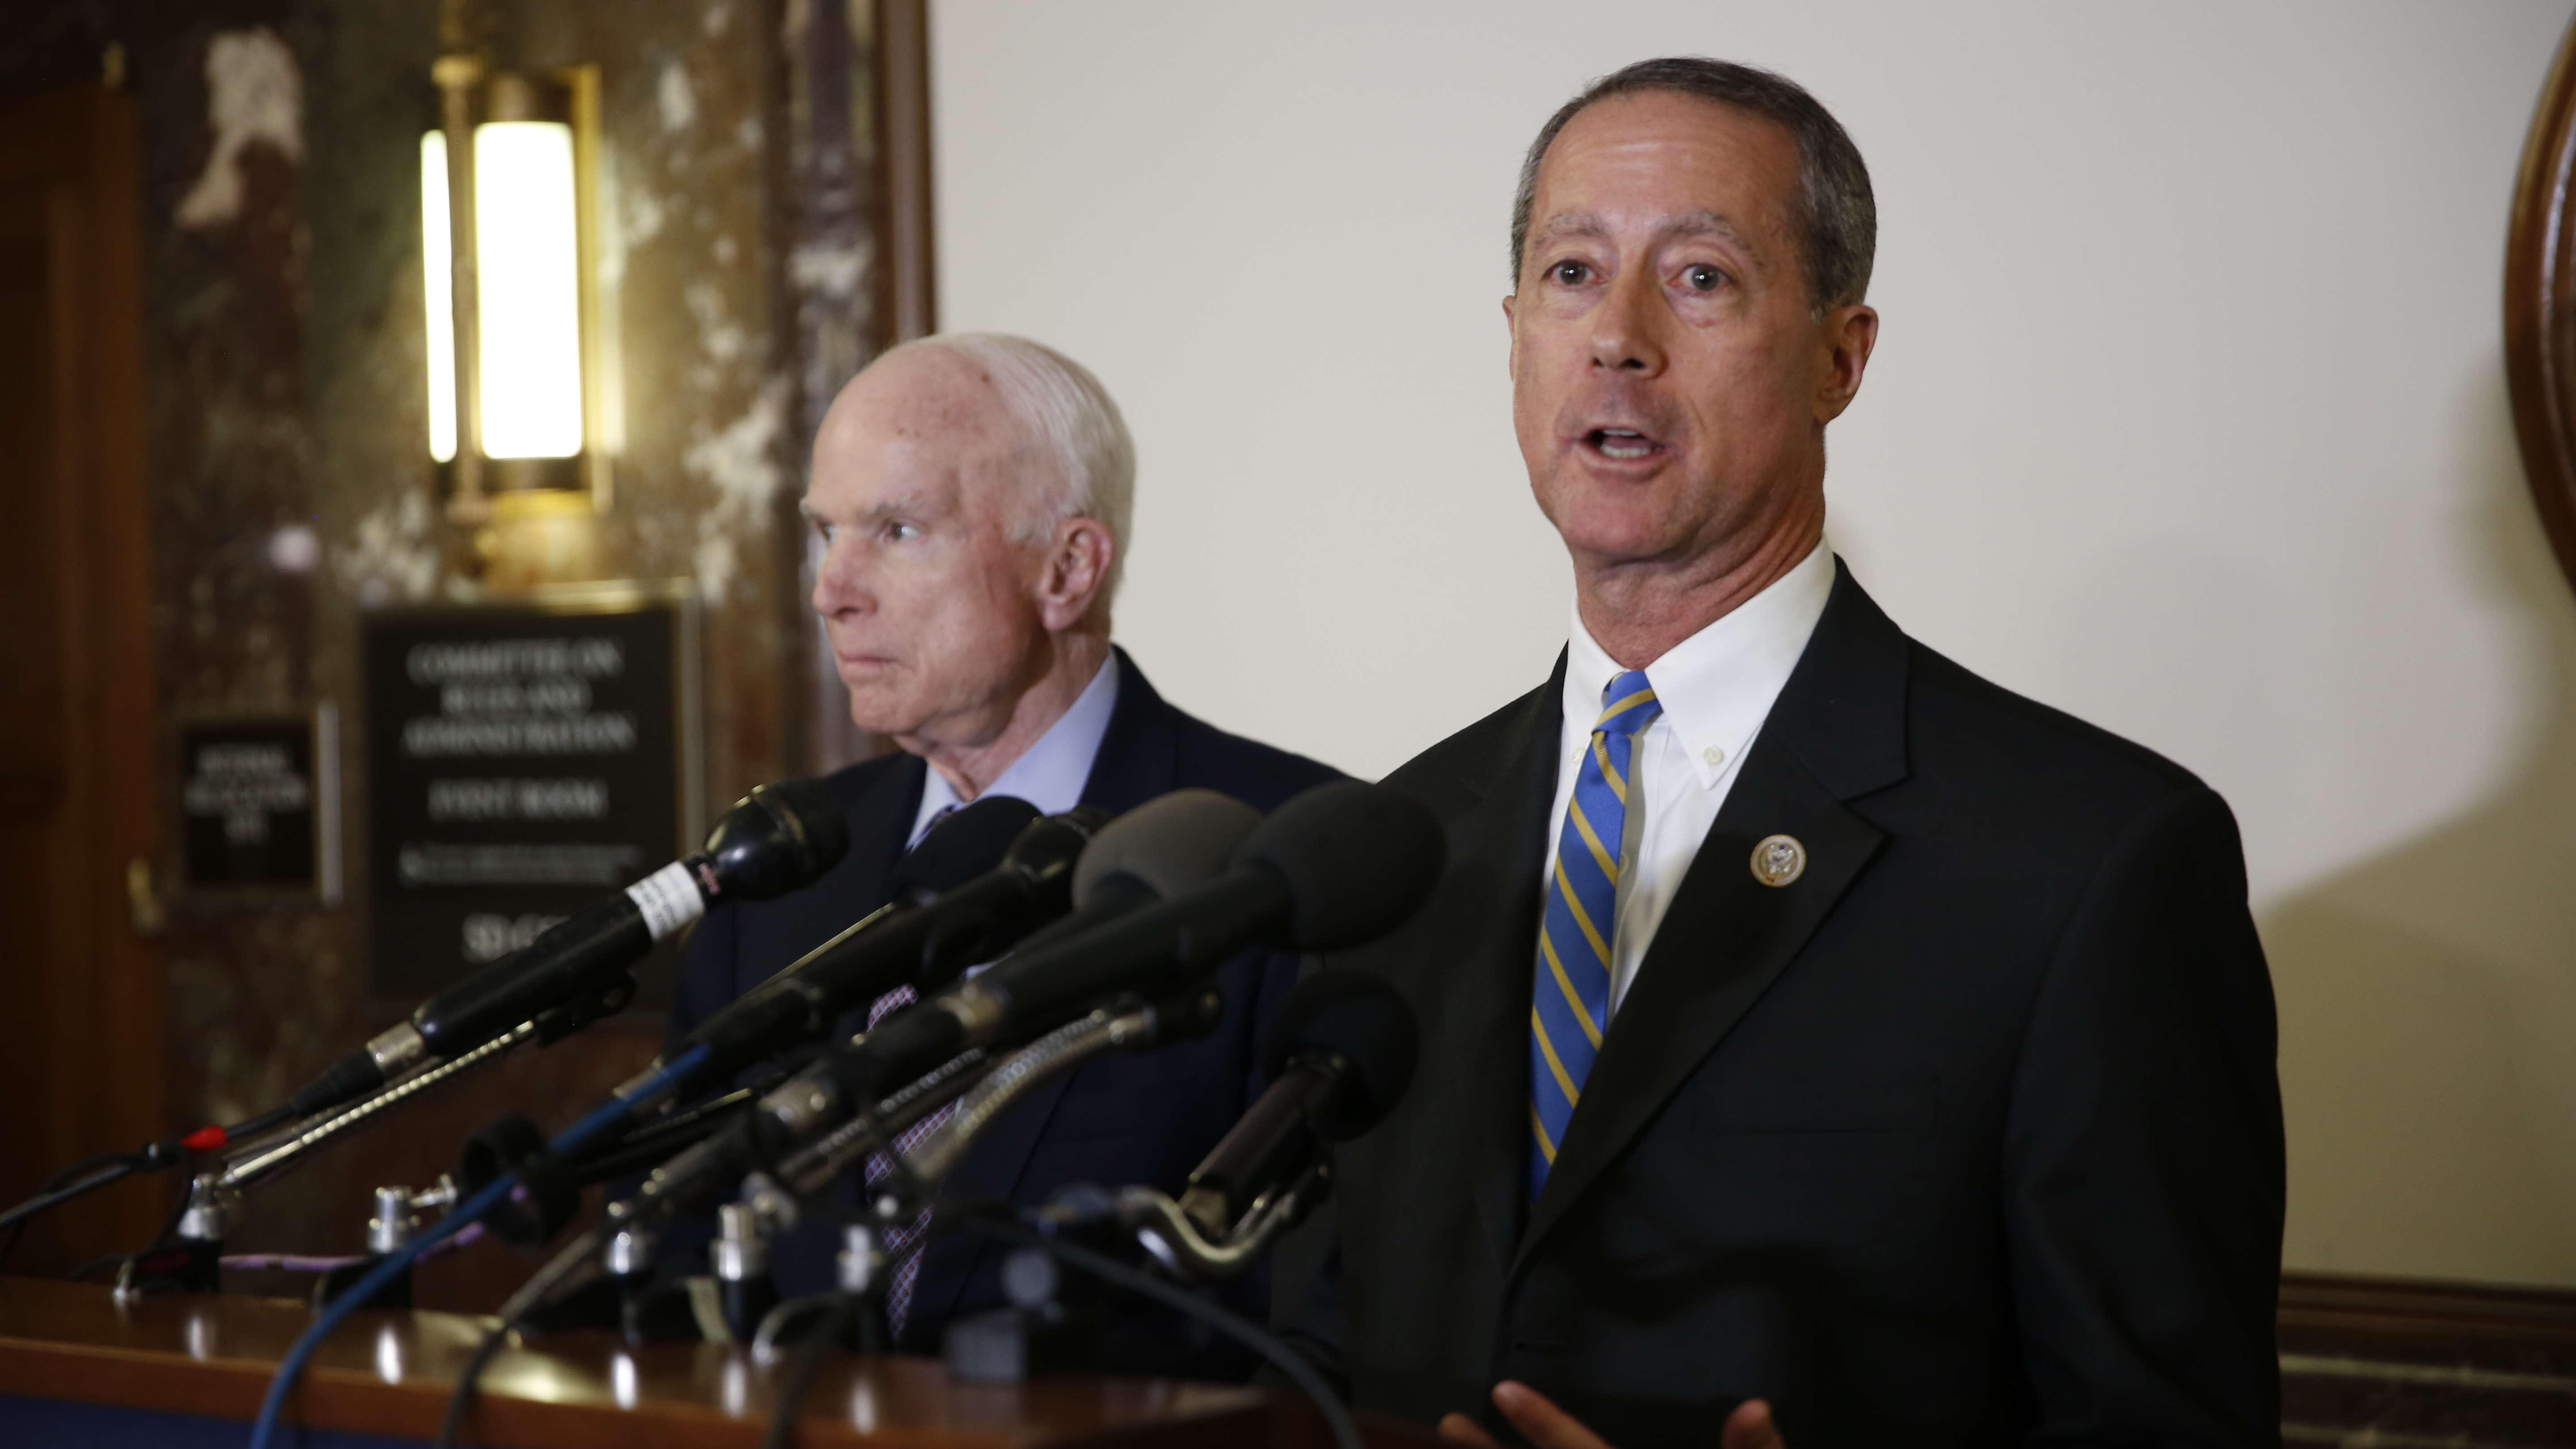 Rep. Mac Thornberry, R-Texas, and Sen. John McCain, left, R-Ariz., speak with reporters at the start of meeting between the Senate and House Armed Services committees on Oct. 25, 2017, in Washington, D.C. (Ben Murray/Staff)